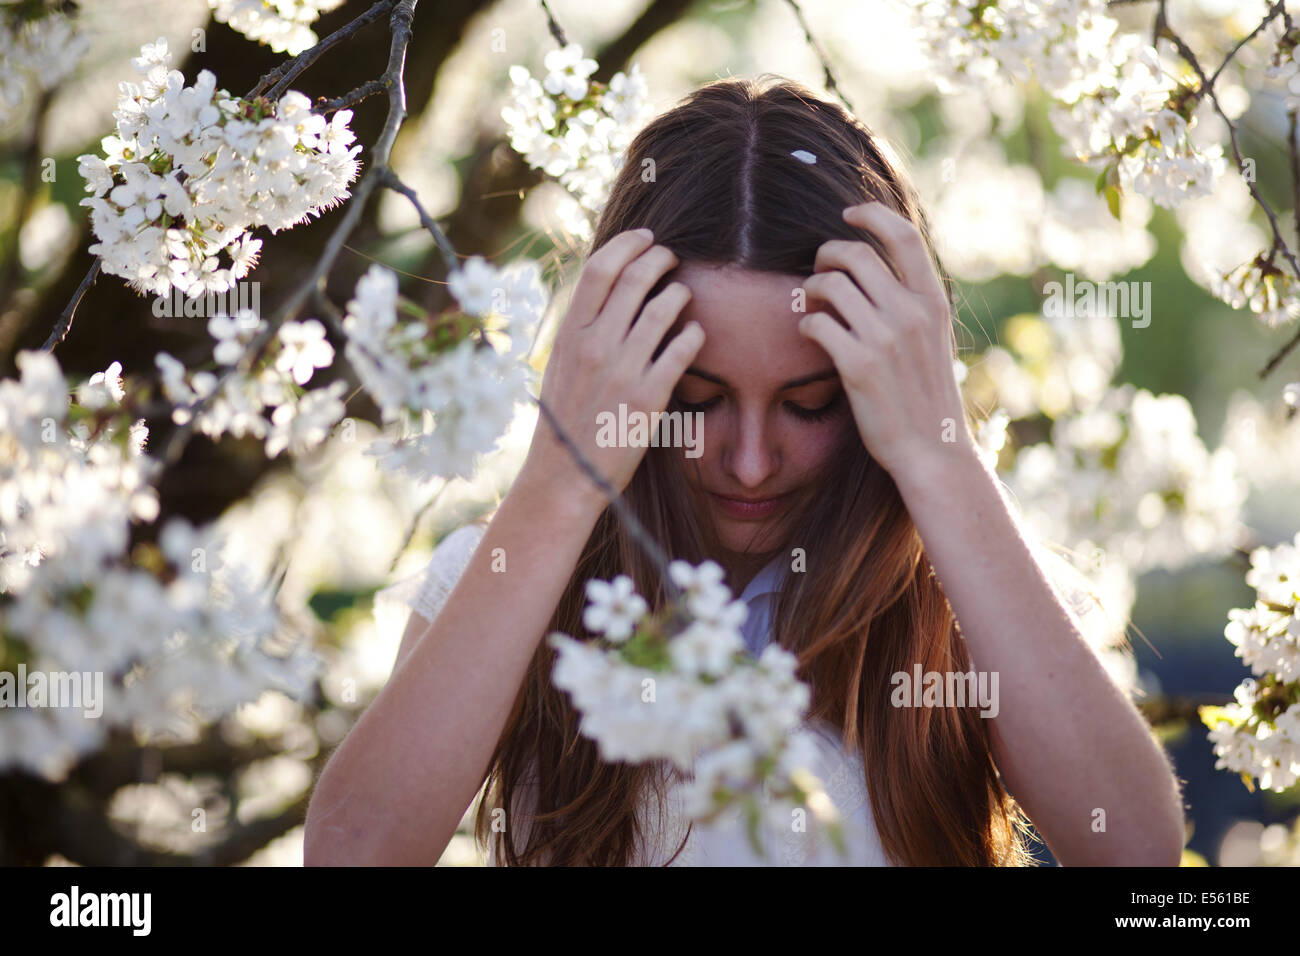 Portrait of a young woman with cherry blossoms - Stock Image